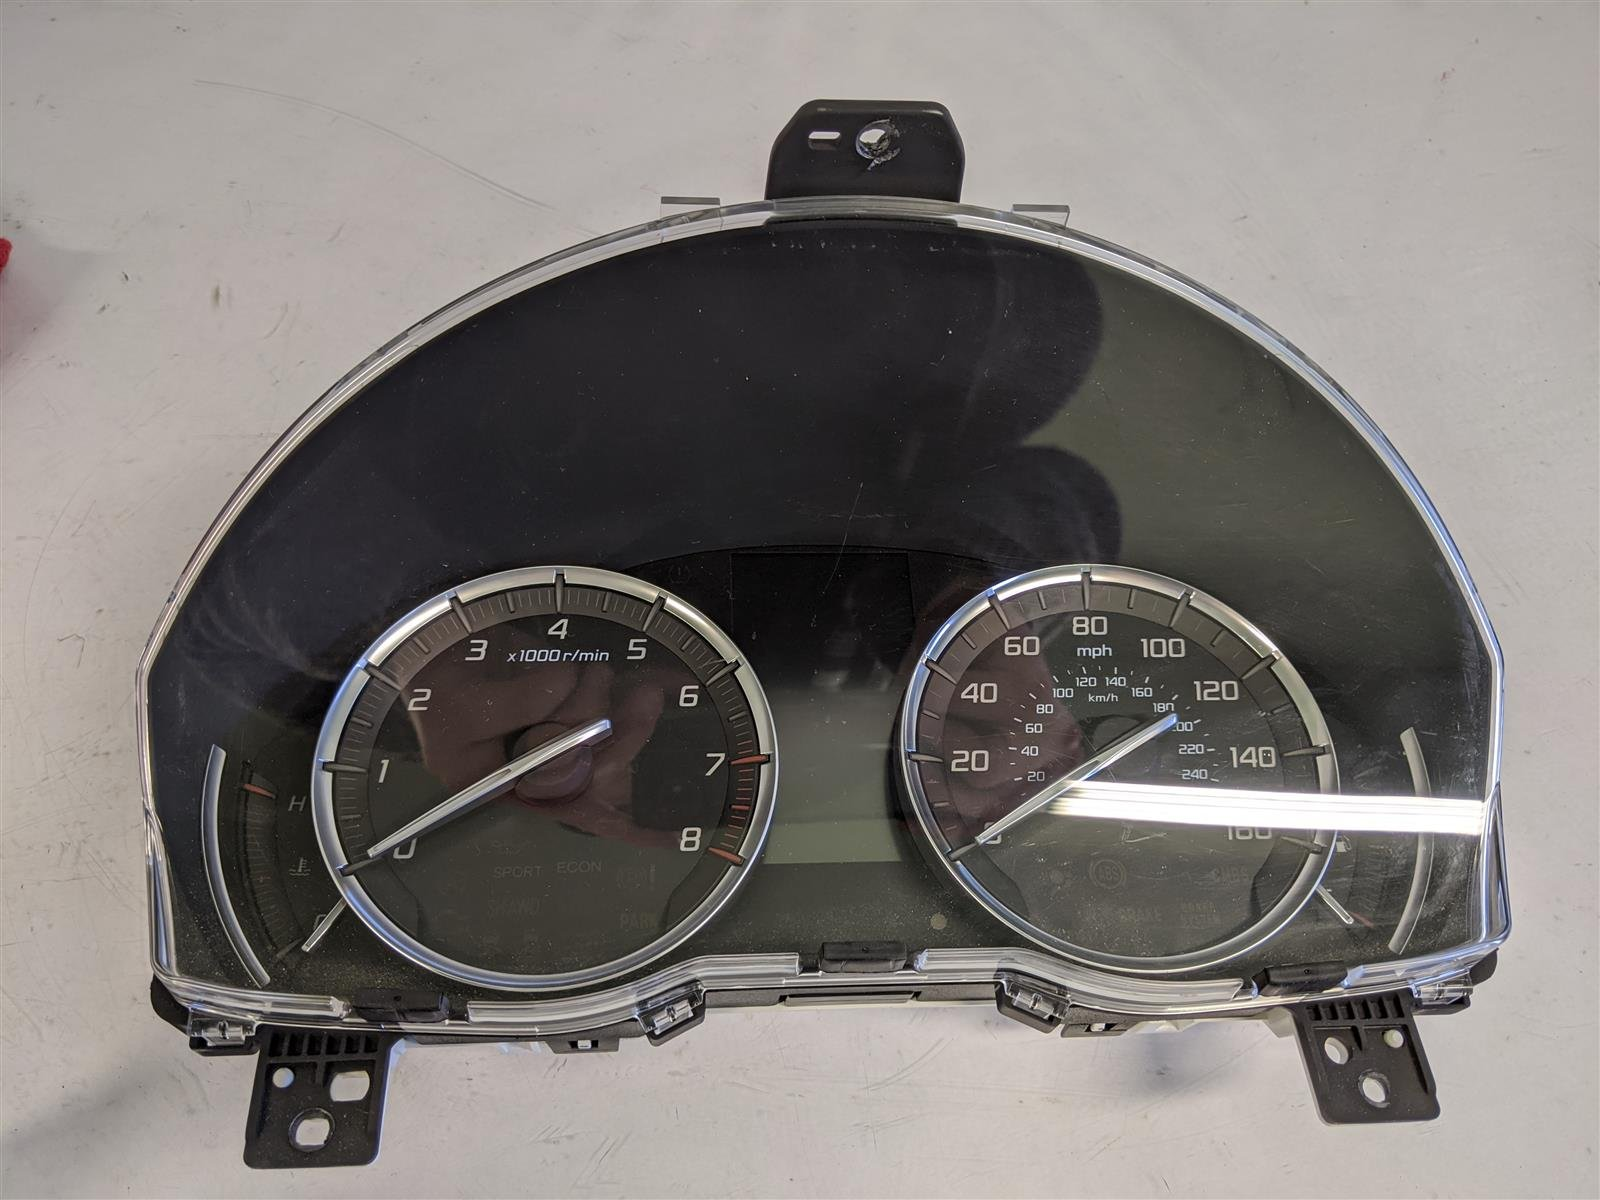 2015 Acura TLX 3.5l 2wd Speedometer Cluster Replacement